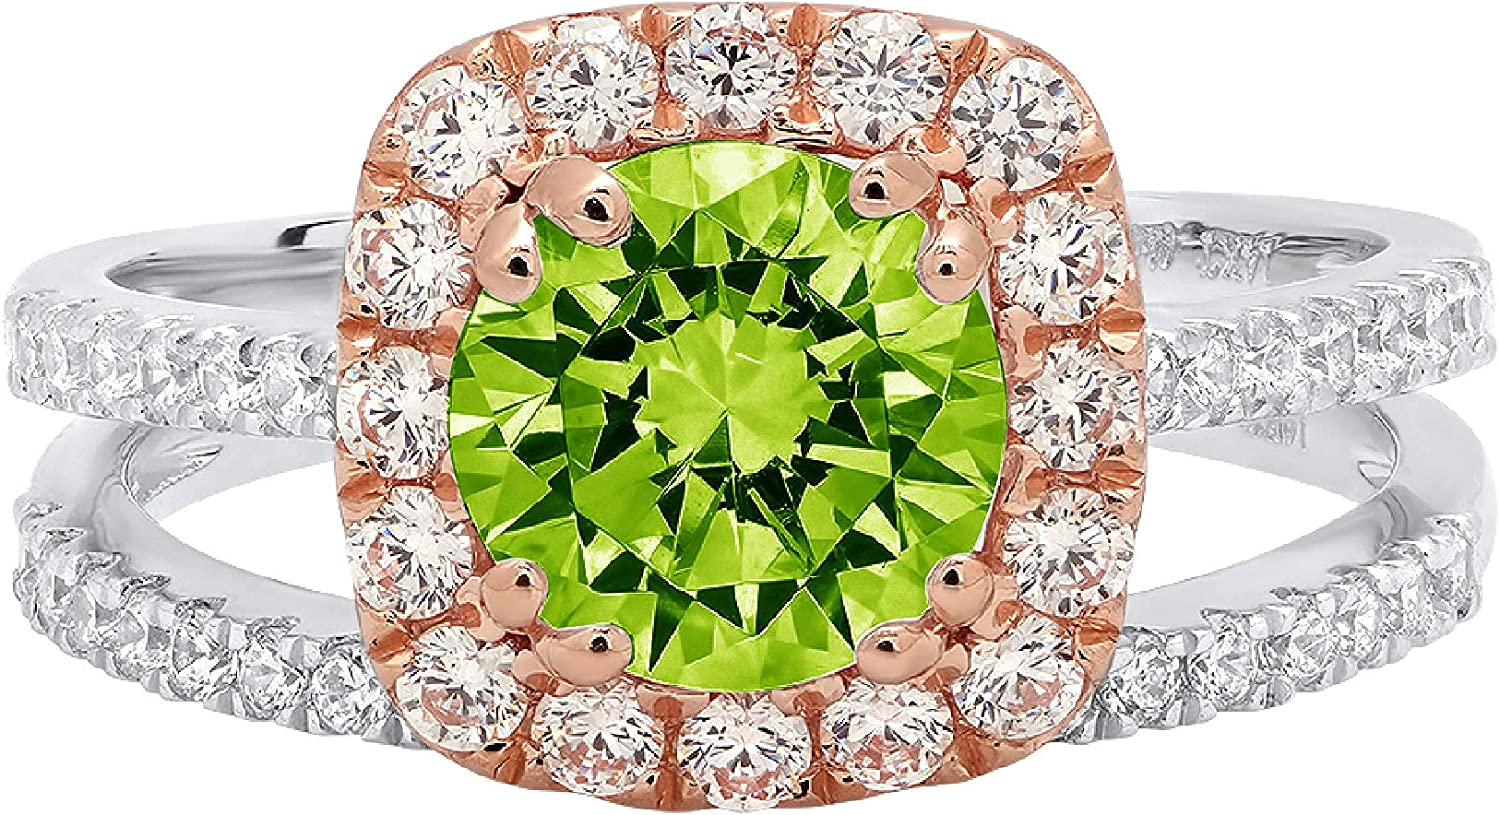 Clara Pucci 2.25ct Round Cut Halo Pave Solitaire Halo Accent Genuine Flawless Natural Green Peridot Engagement Promise Statement Anniversary Bridal Wedding Ring Band set Solid 18K White Rose Gold